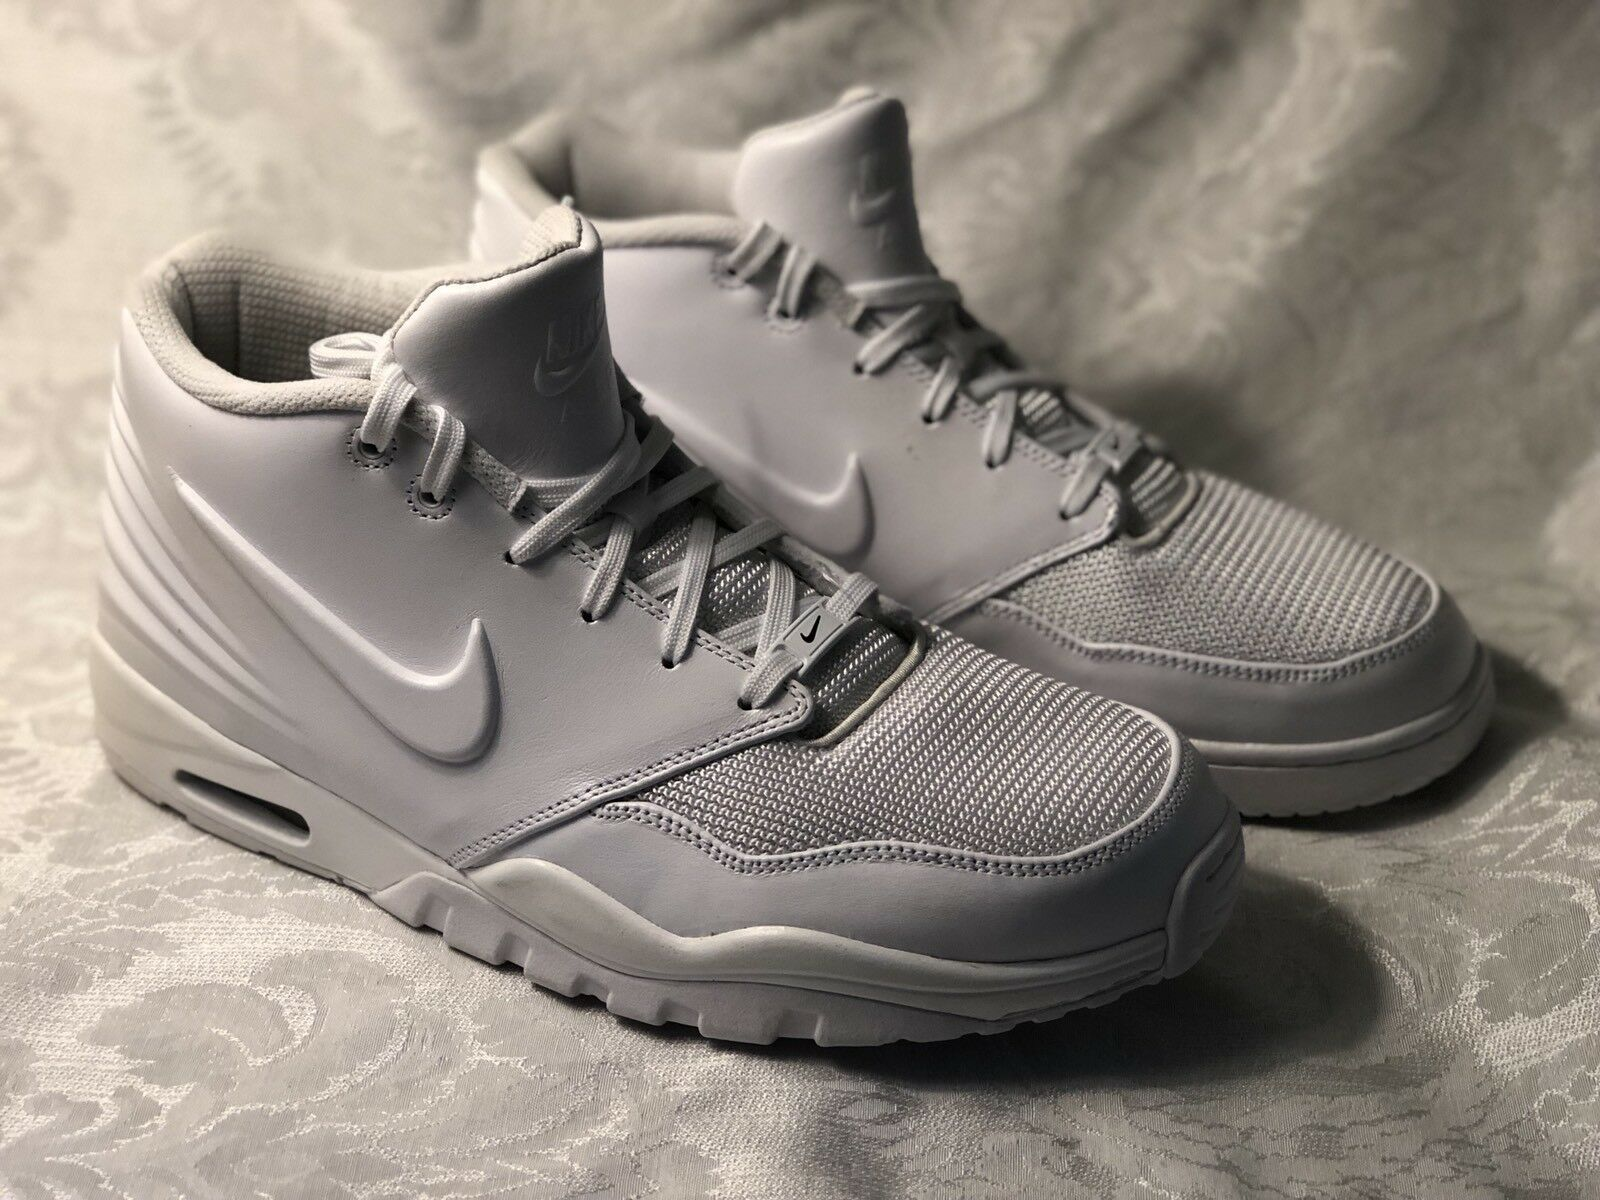 New Size 12 Nike Air Entertainer 819854-100 White - See Description